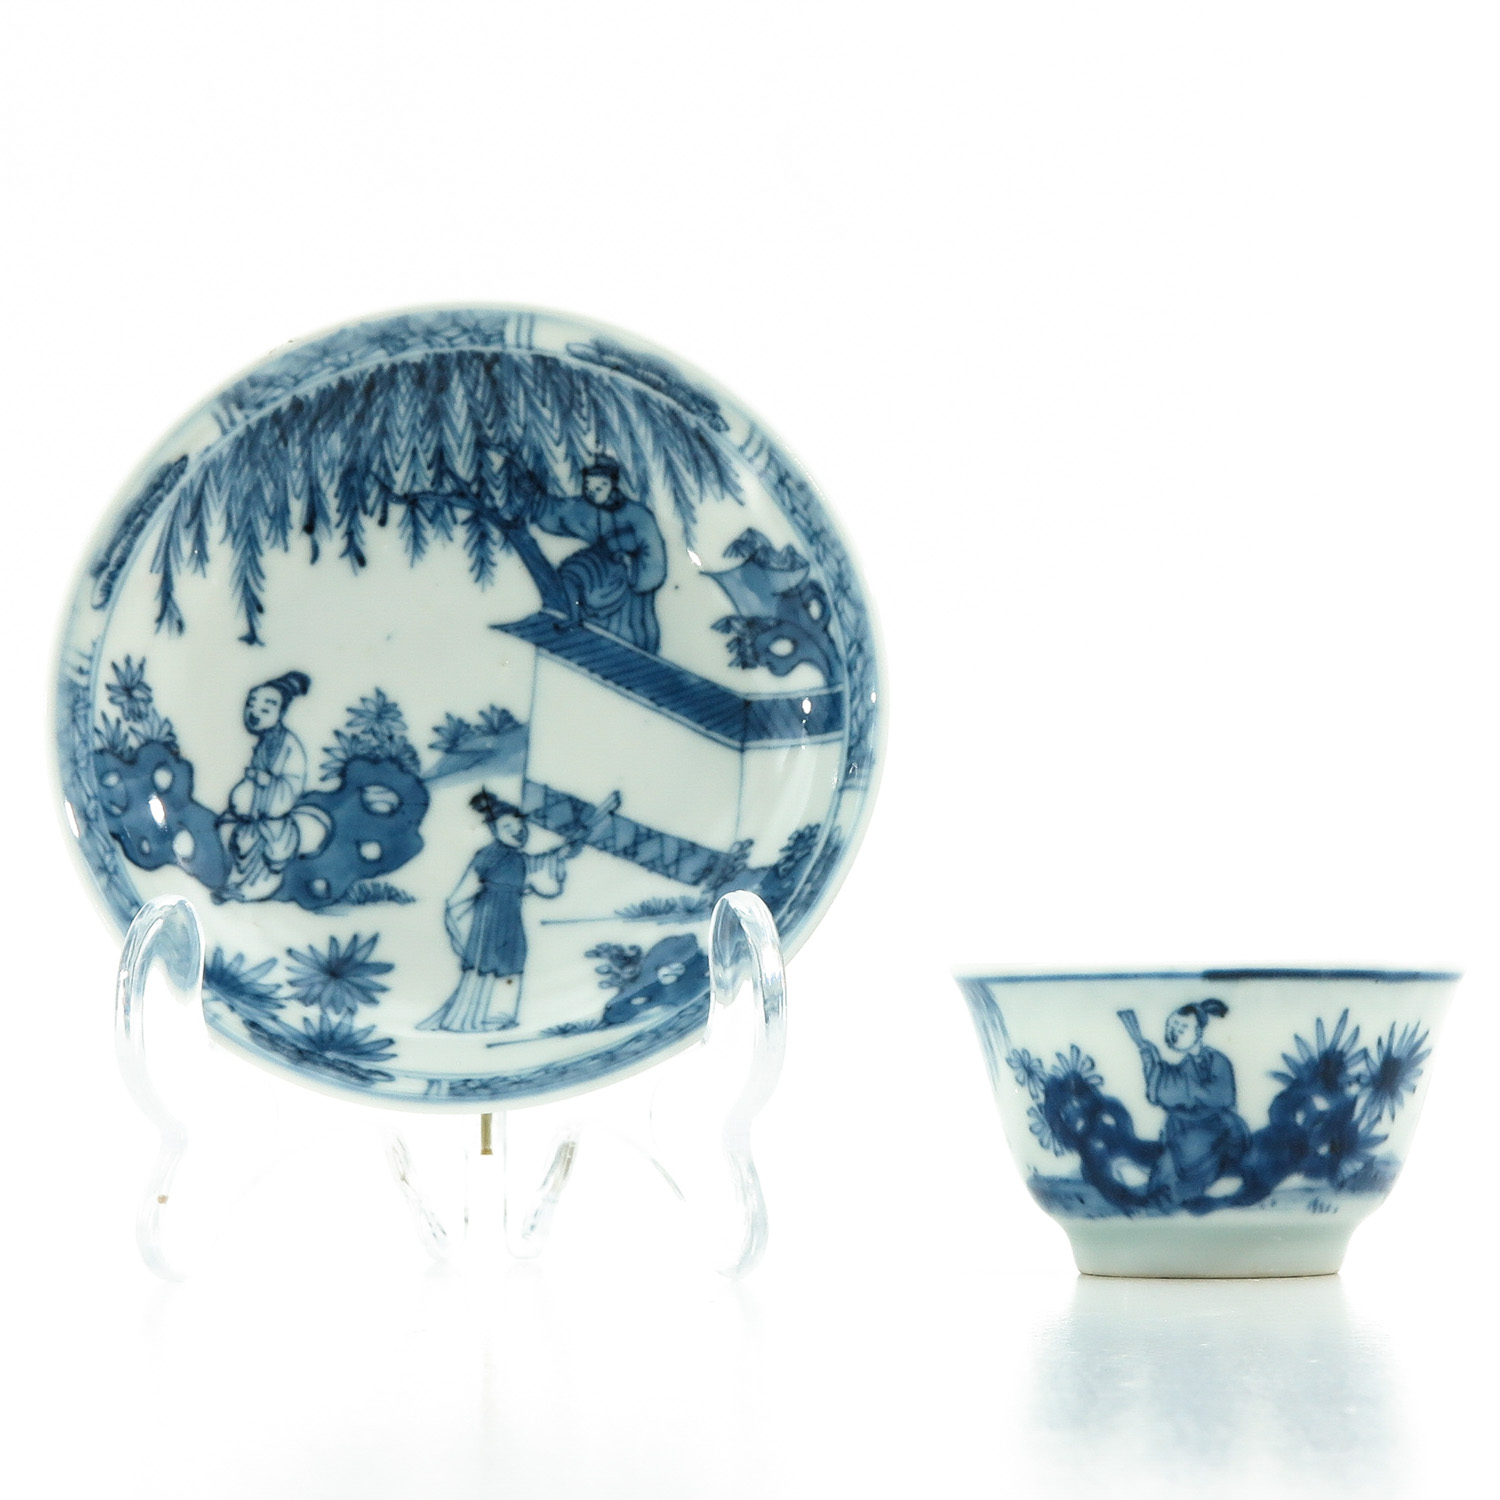 A Blue and White Cup and Saucer - Image 3 of 10